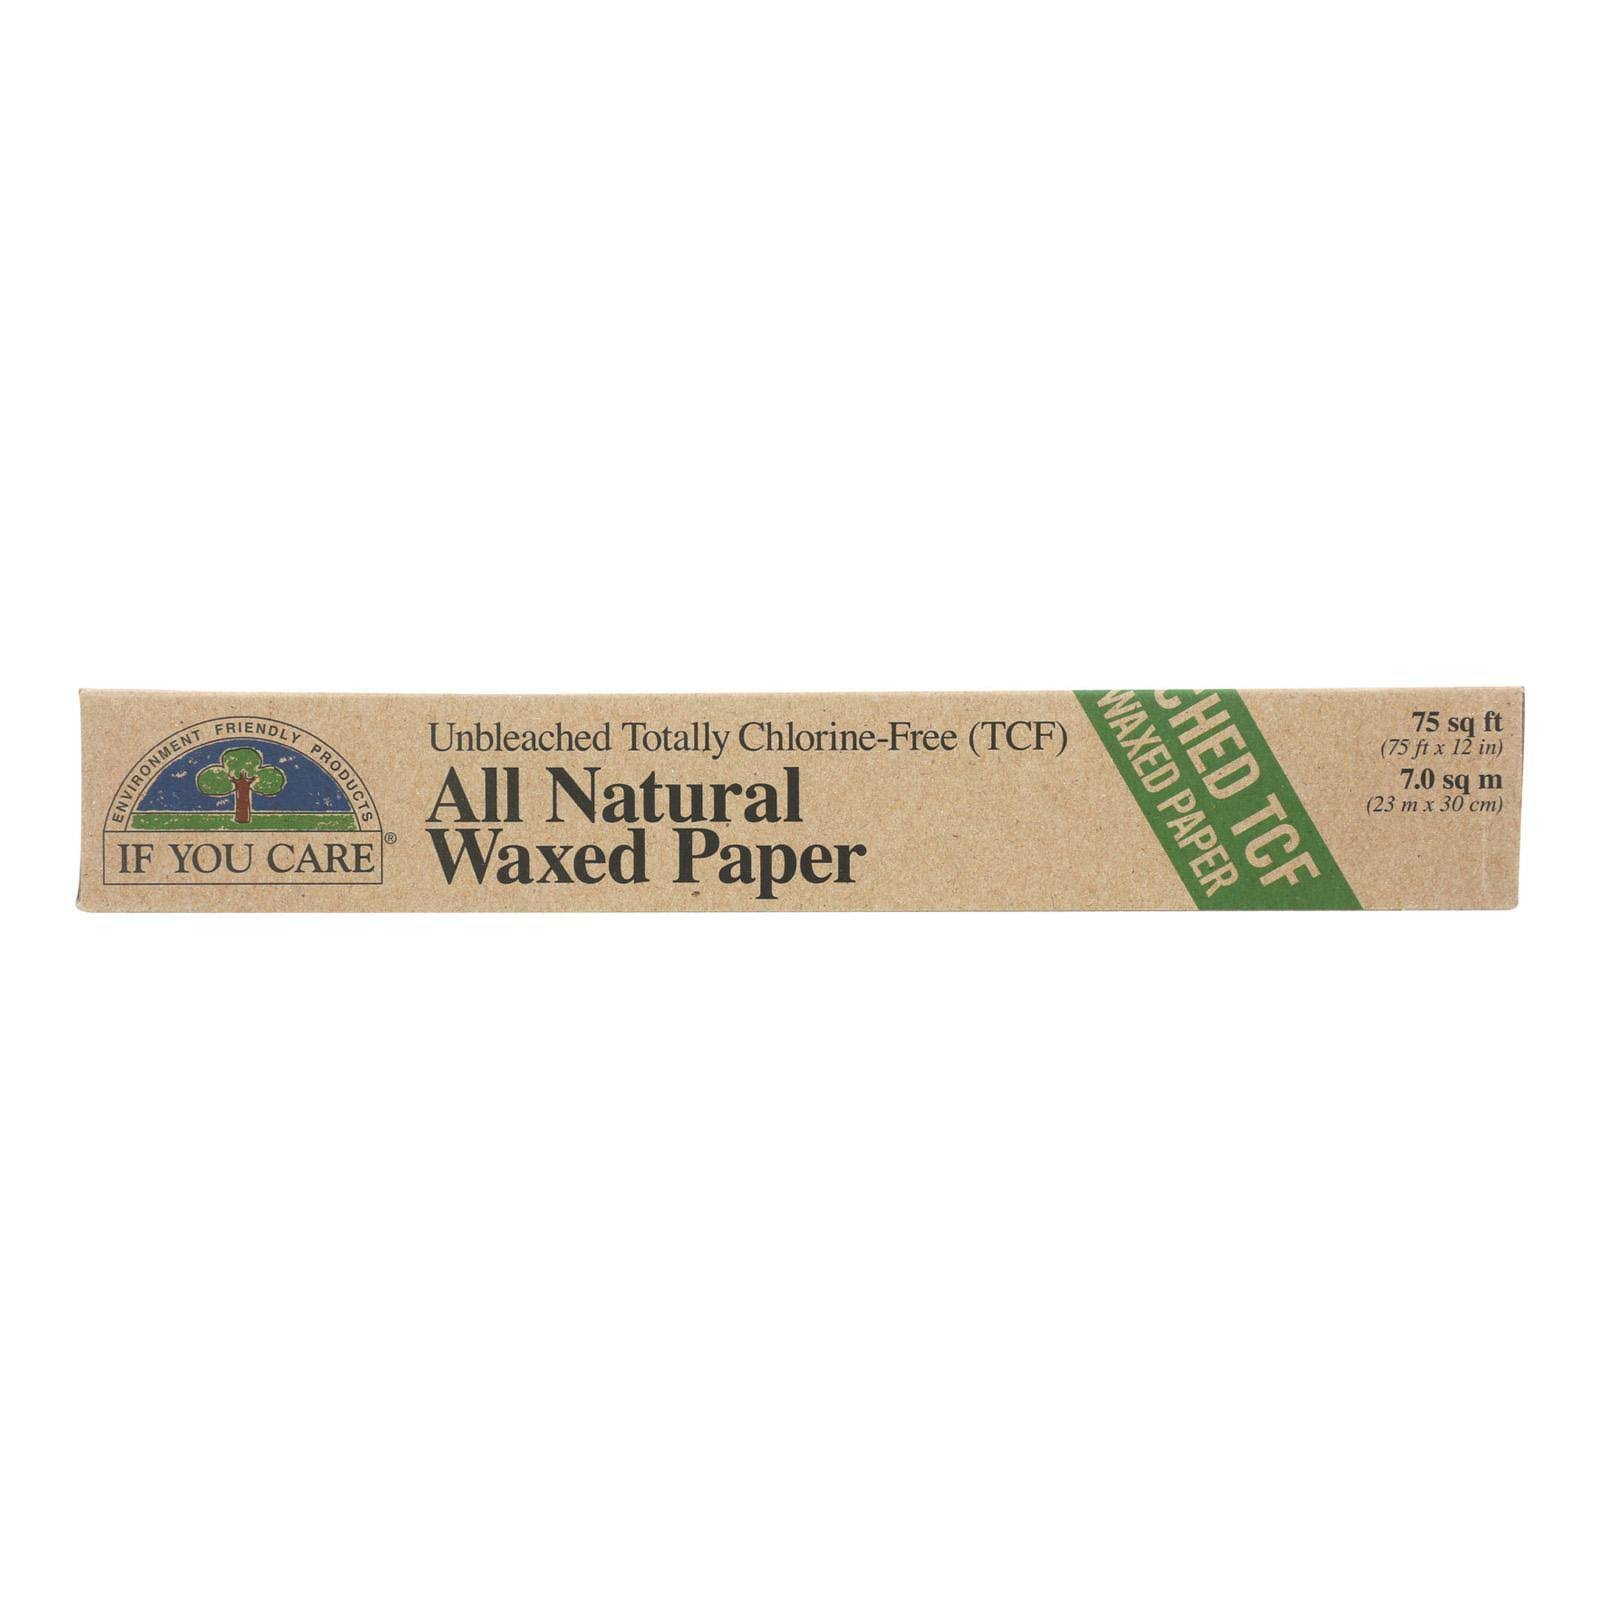 If You Care Unbleached 100% Soybean Wax Paper, 75 sq ft, Beige